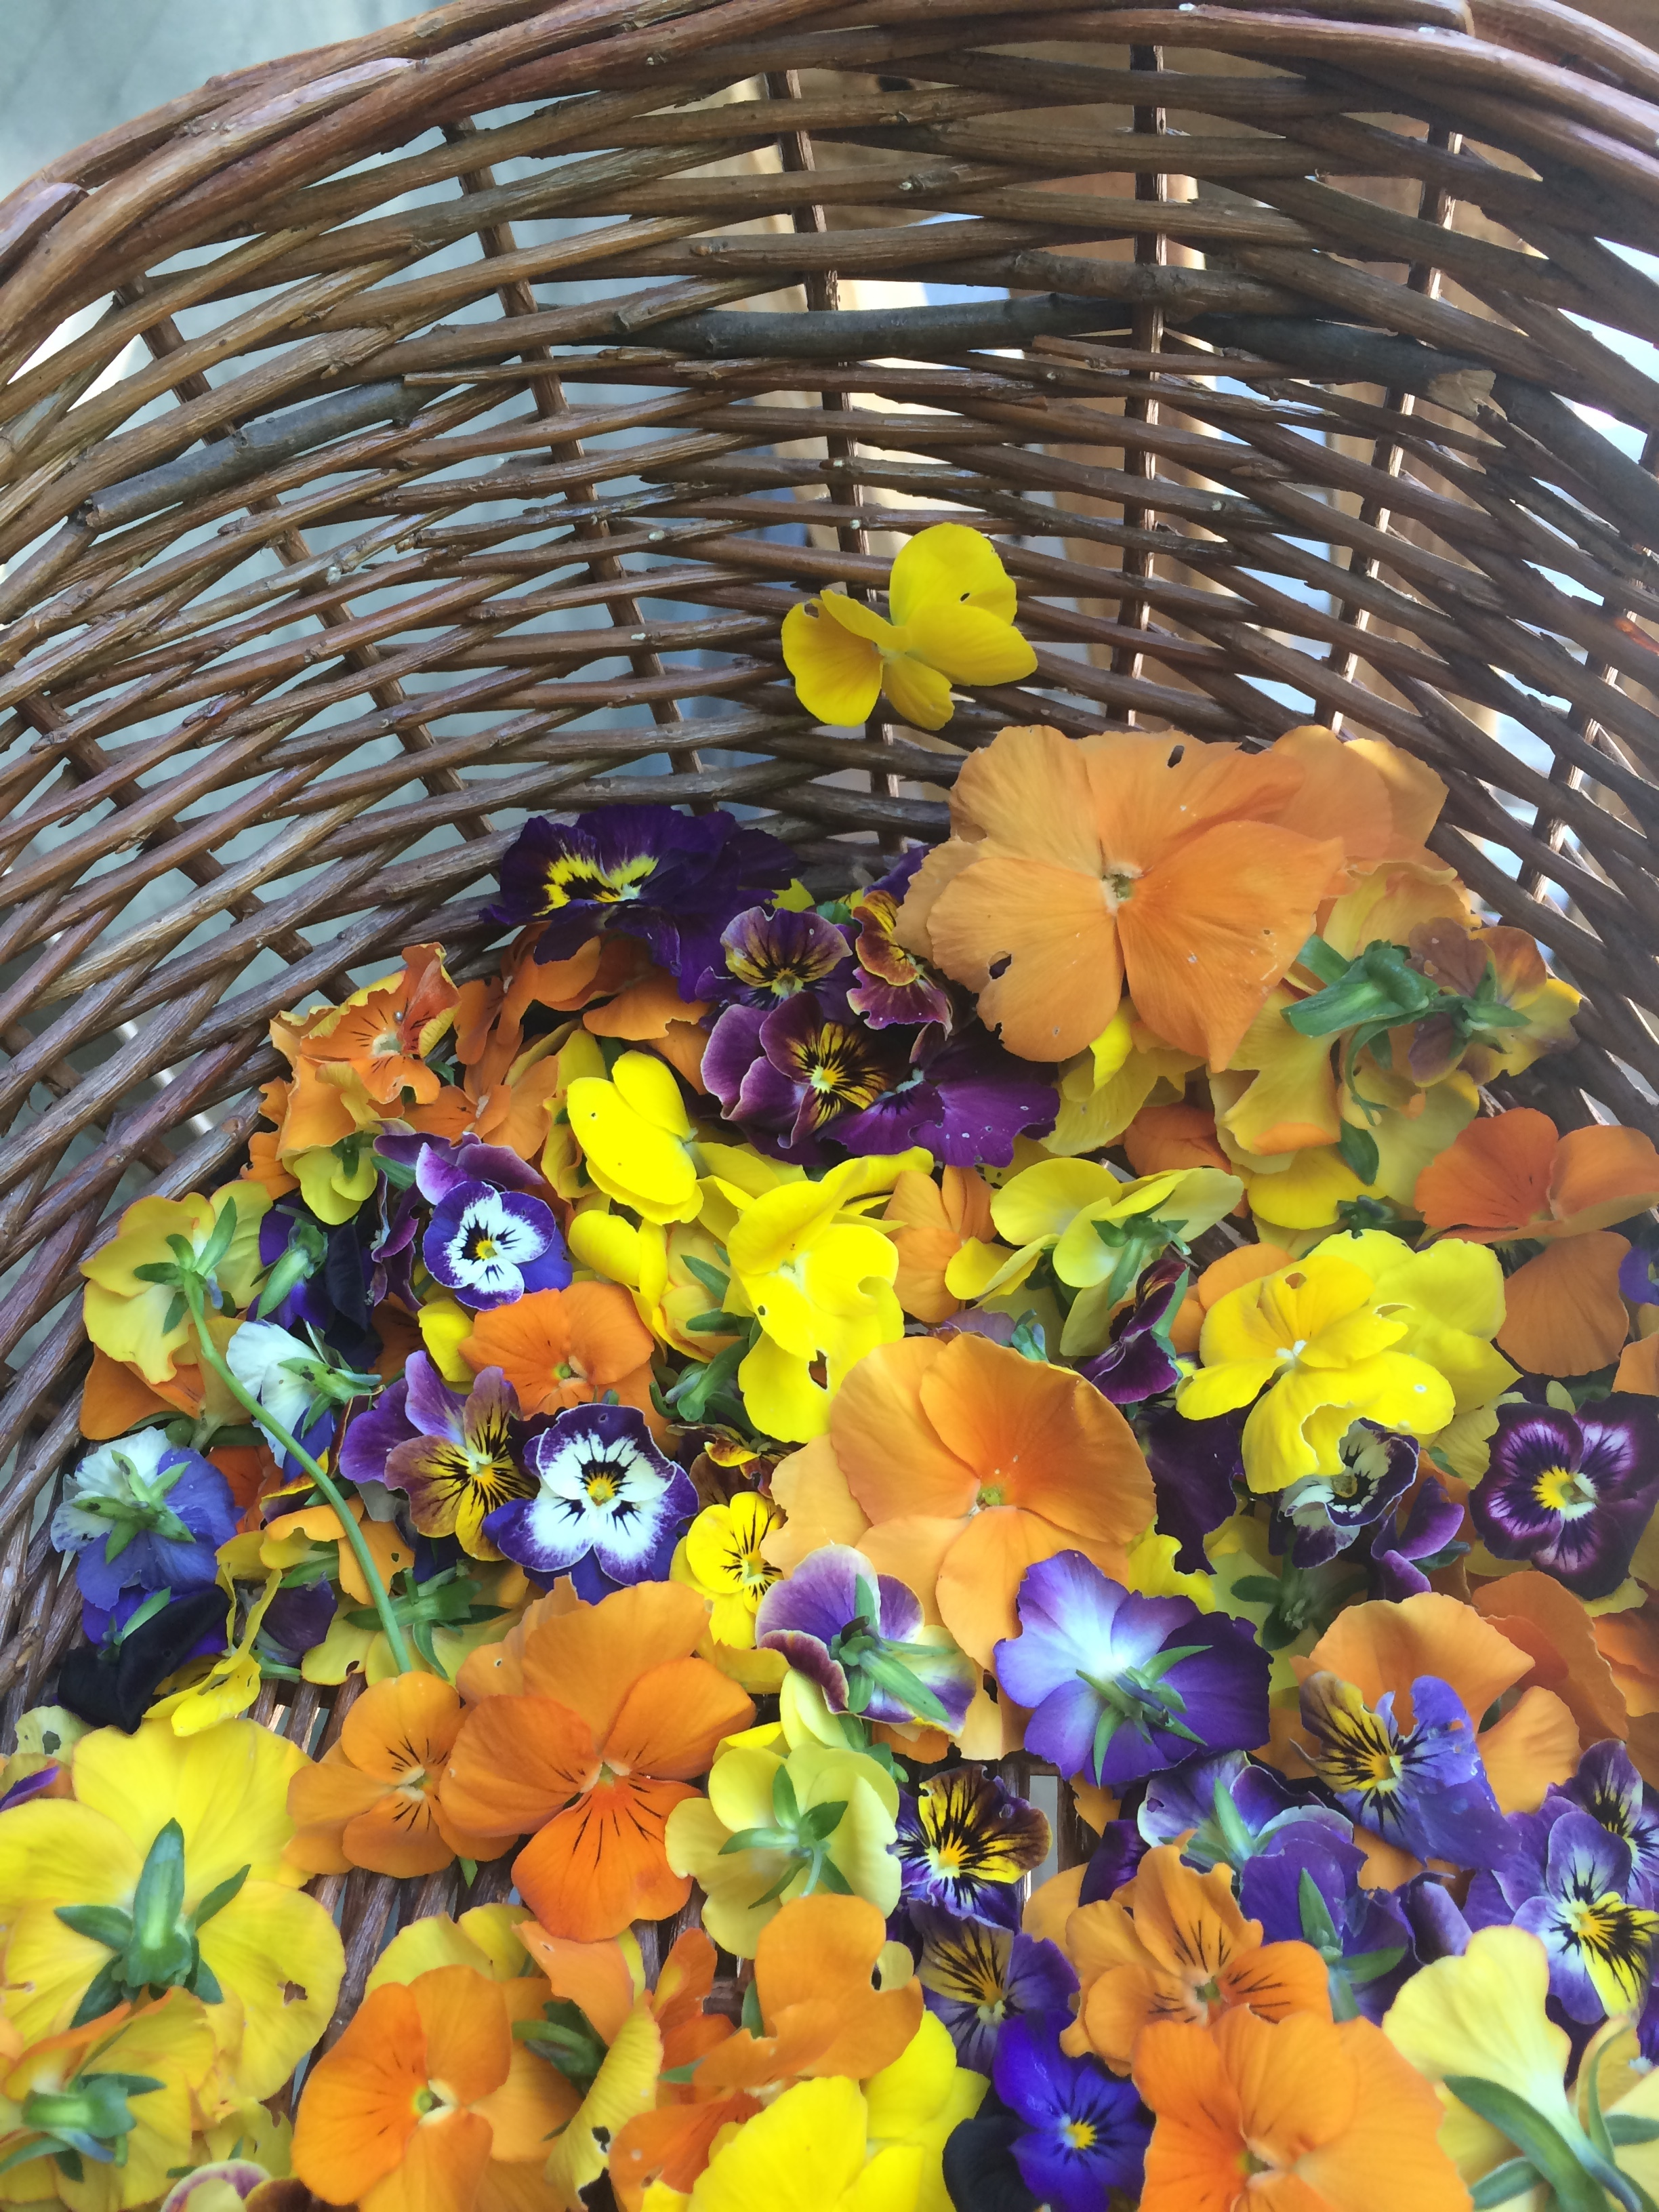 Picking pansies for the season